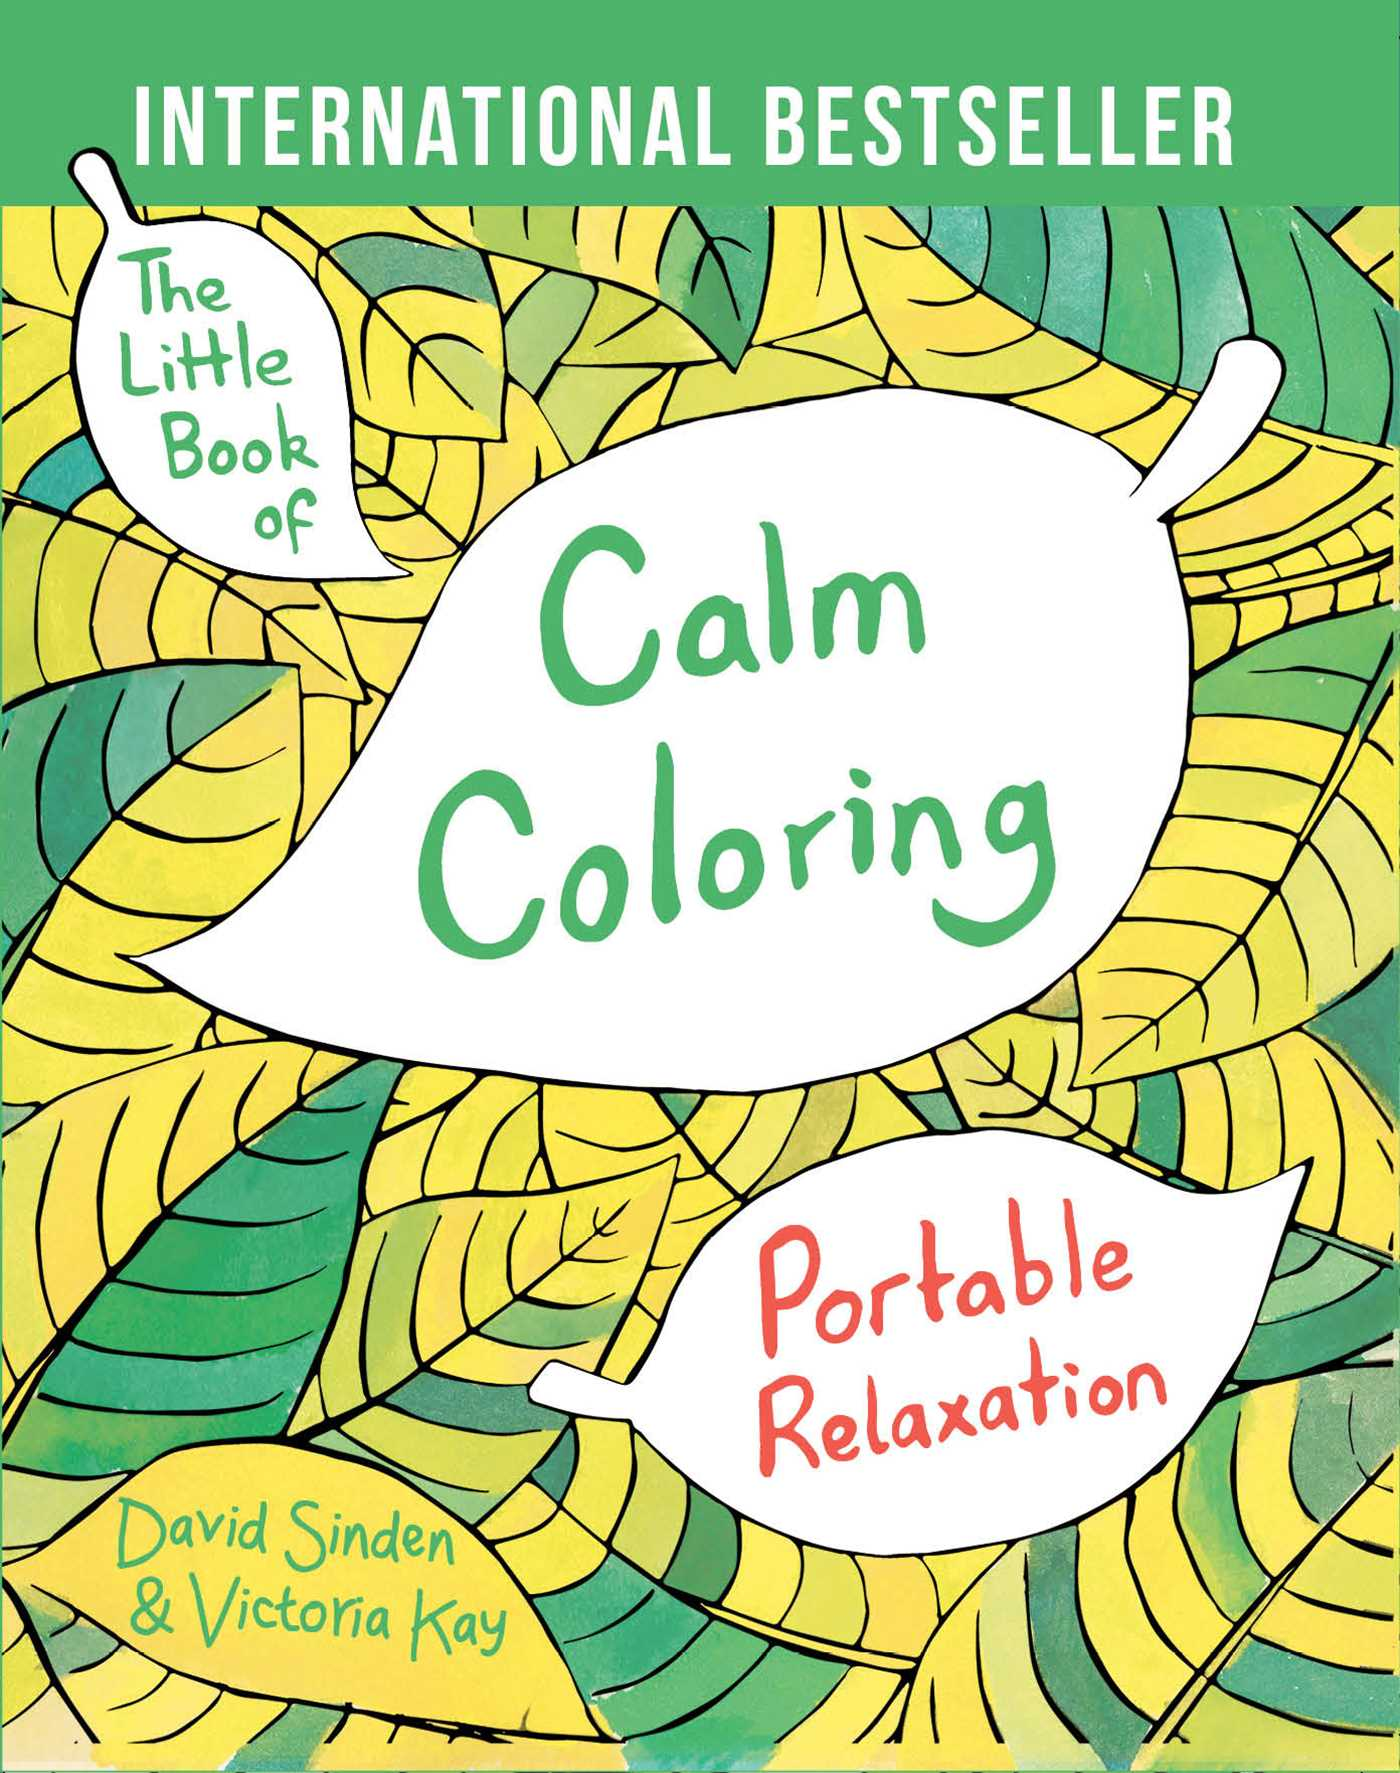 Book Cover Image Jpg The Little Of Calm Coloring